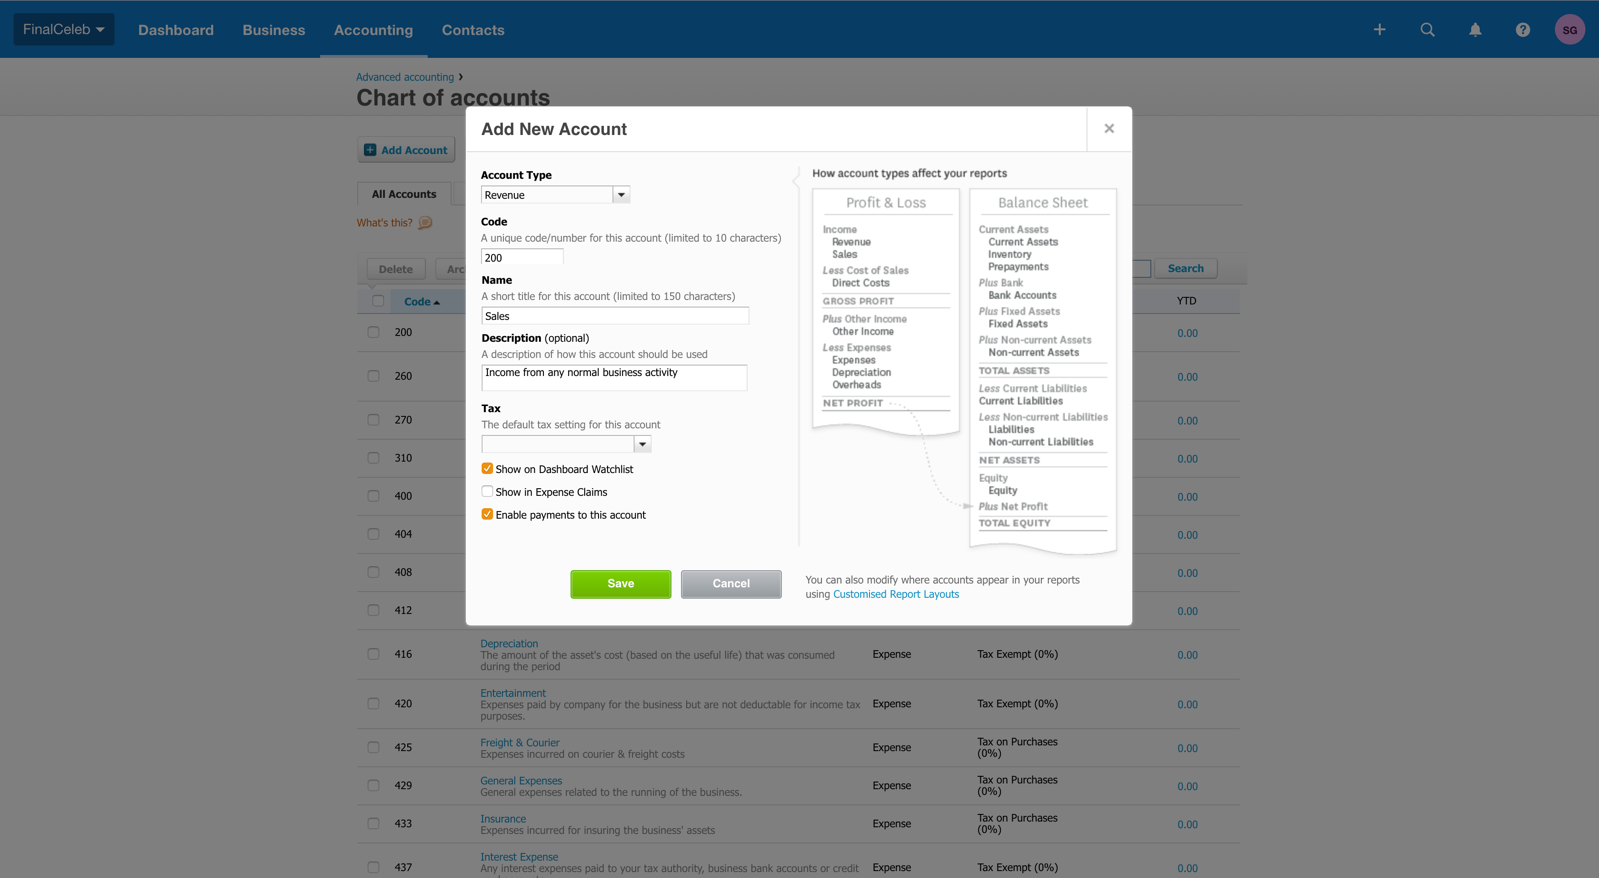 Specifying the account type and code on Xero